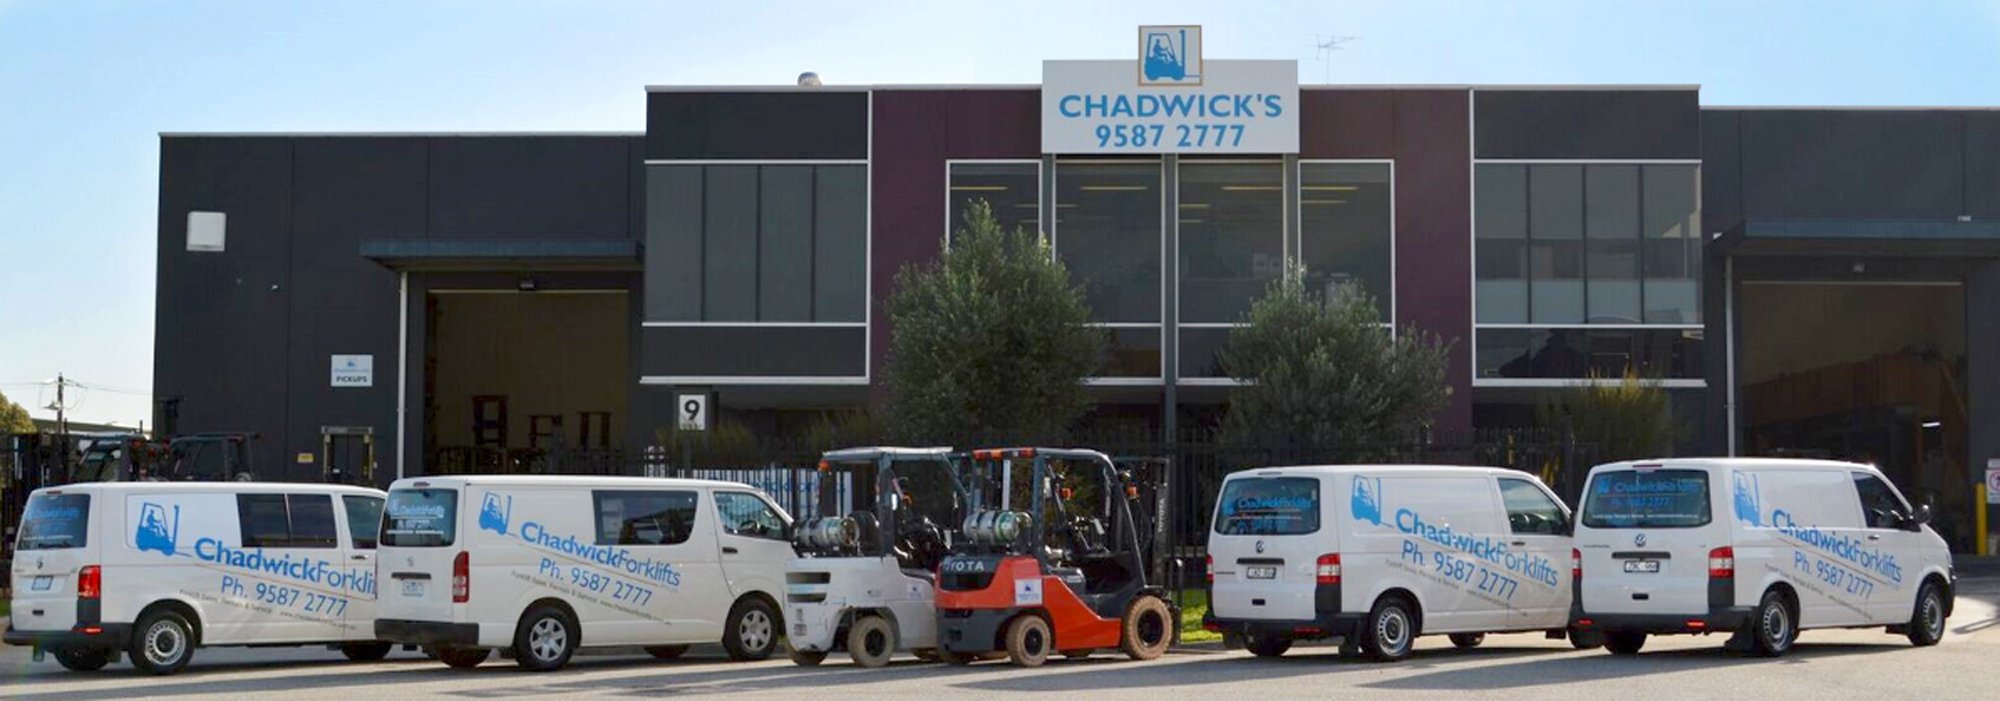 Chadwick-Forklifts-building-1